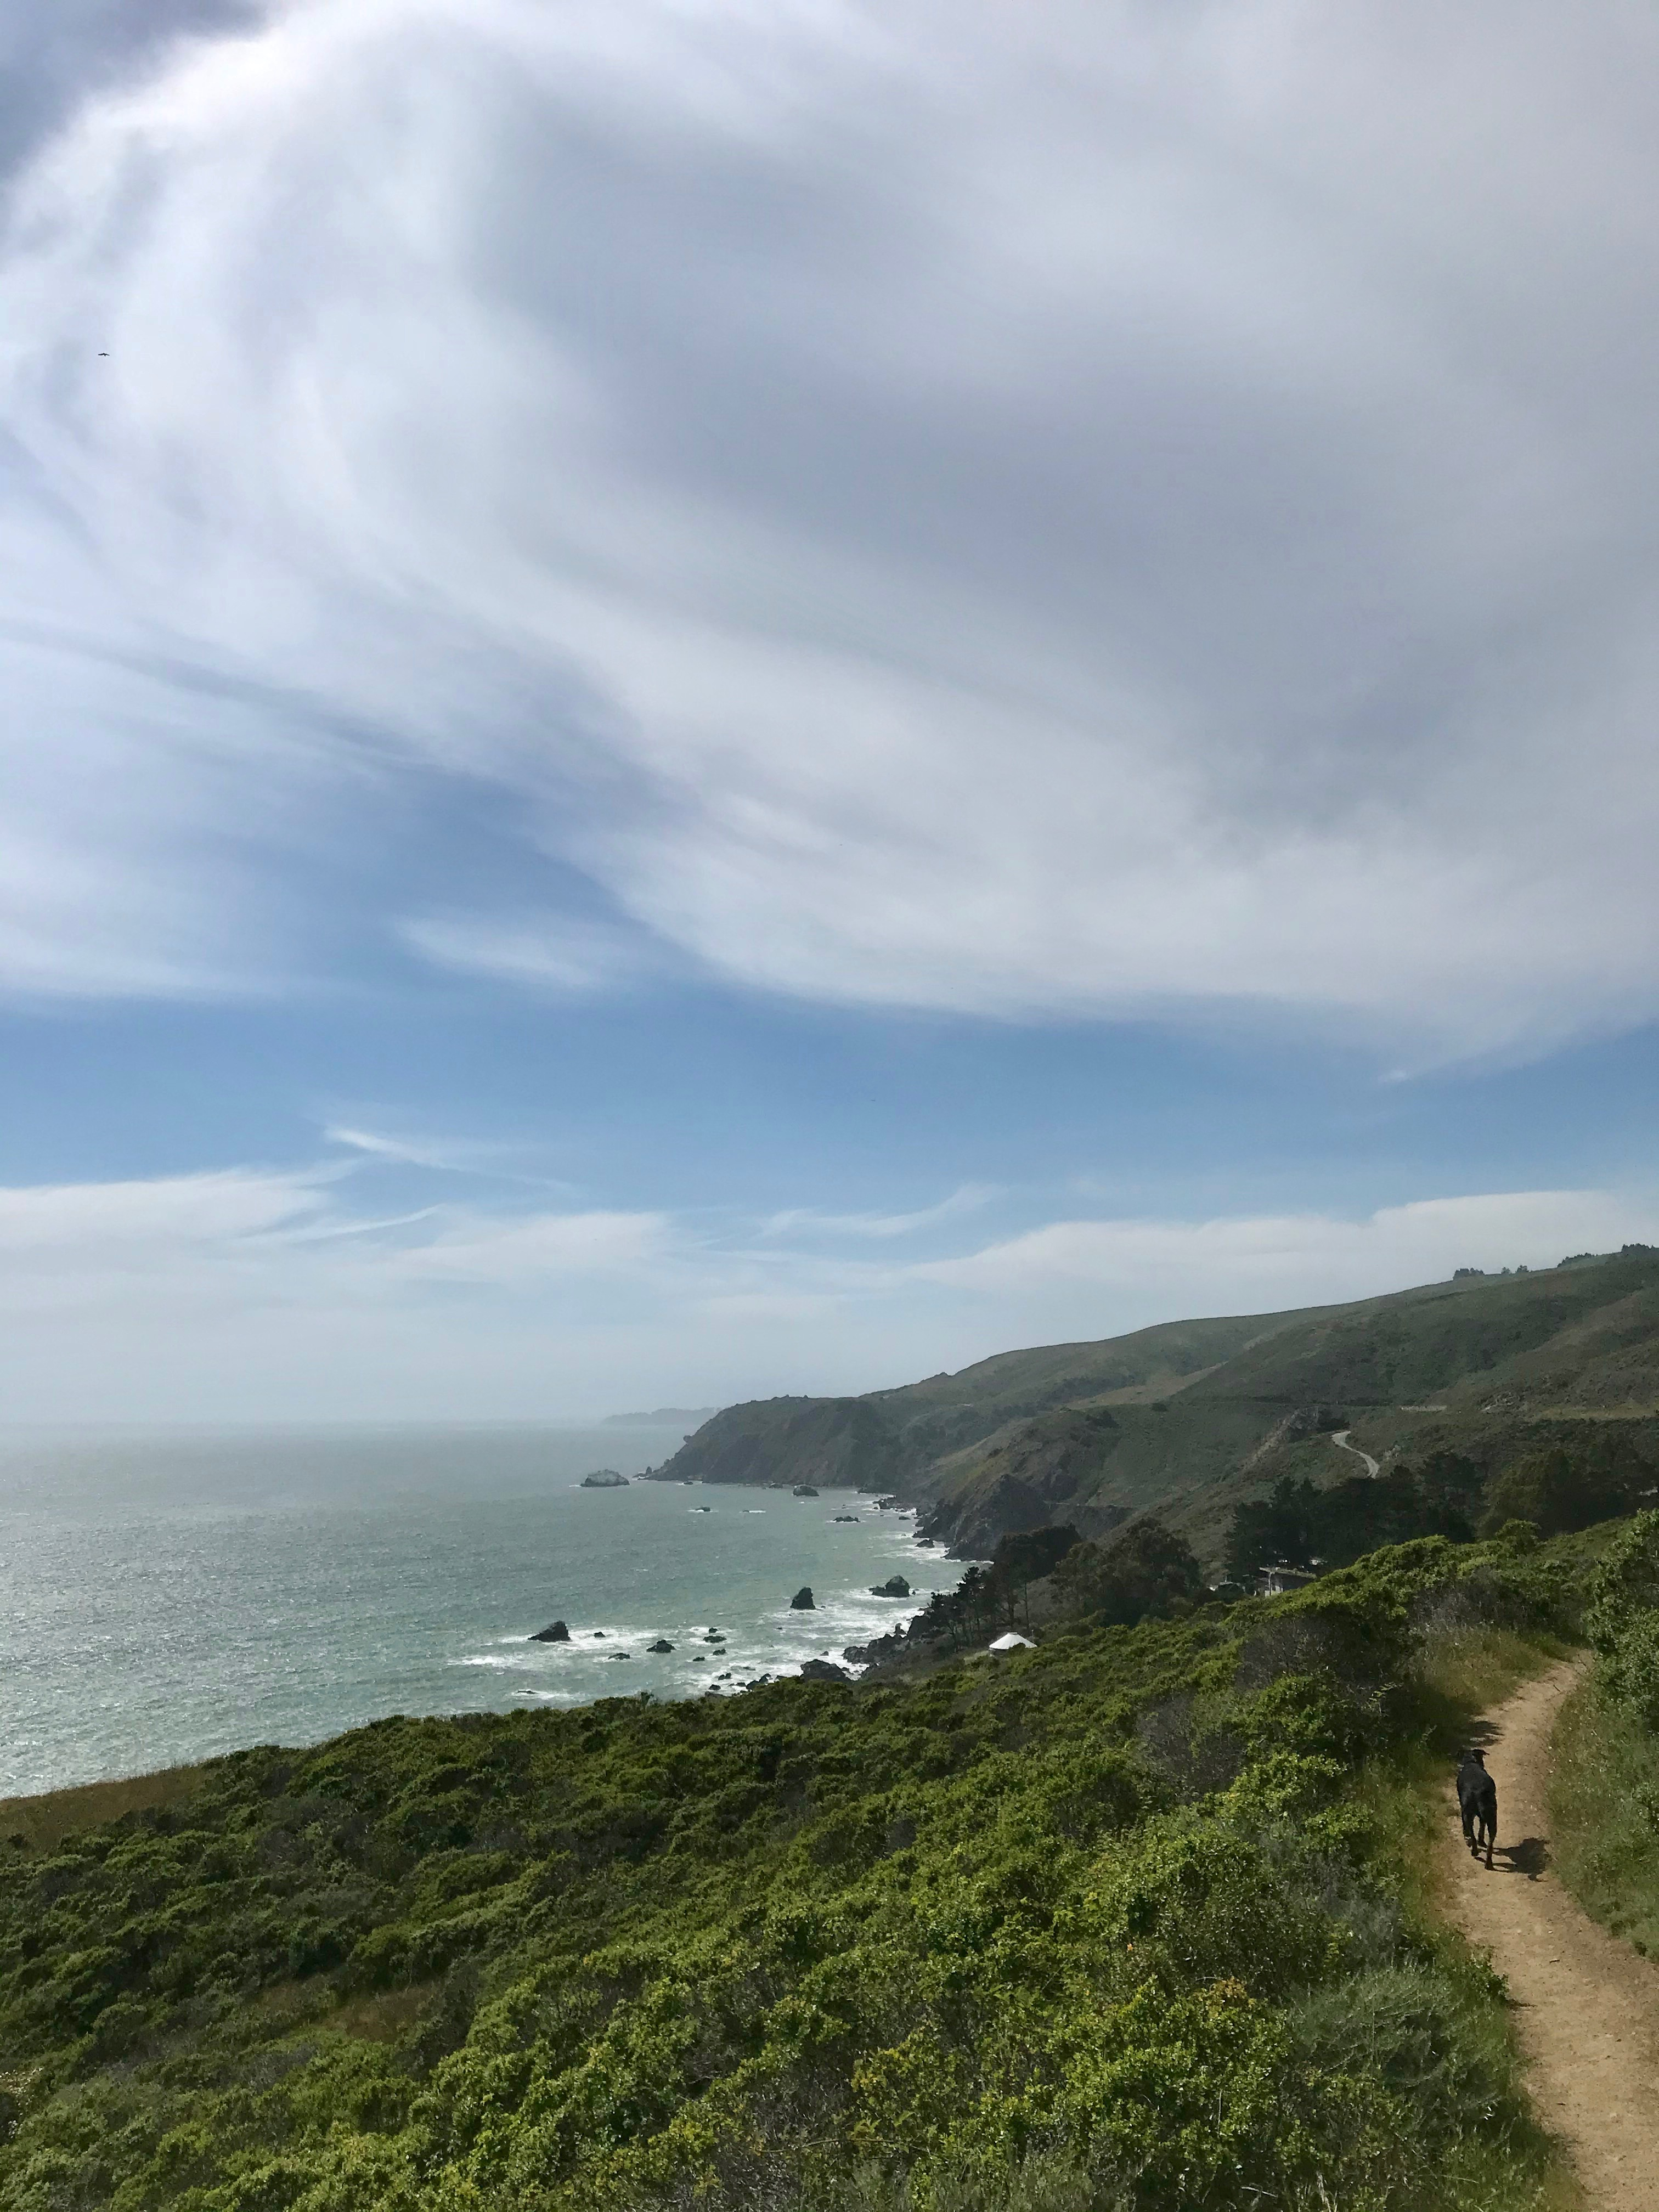 Dog walking along a trail by the ocean